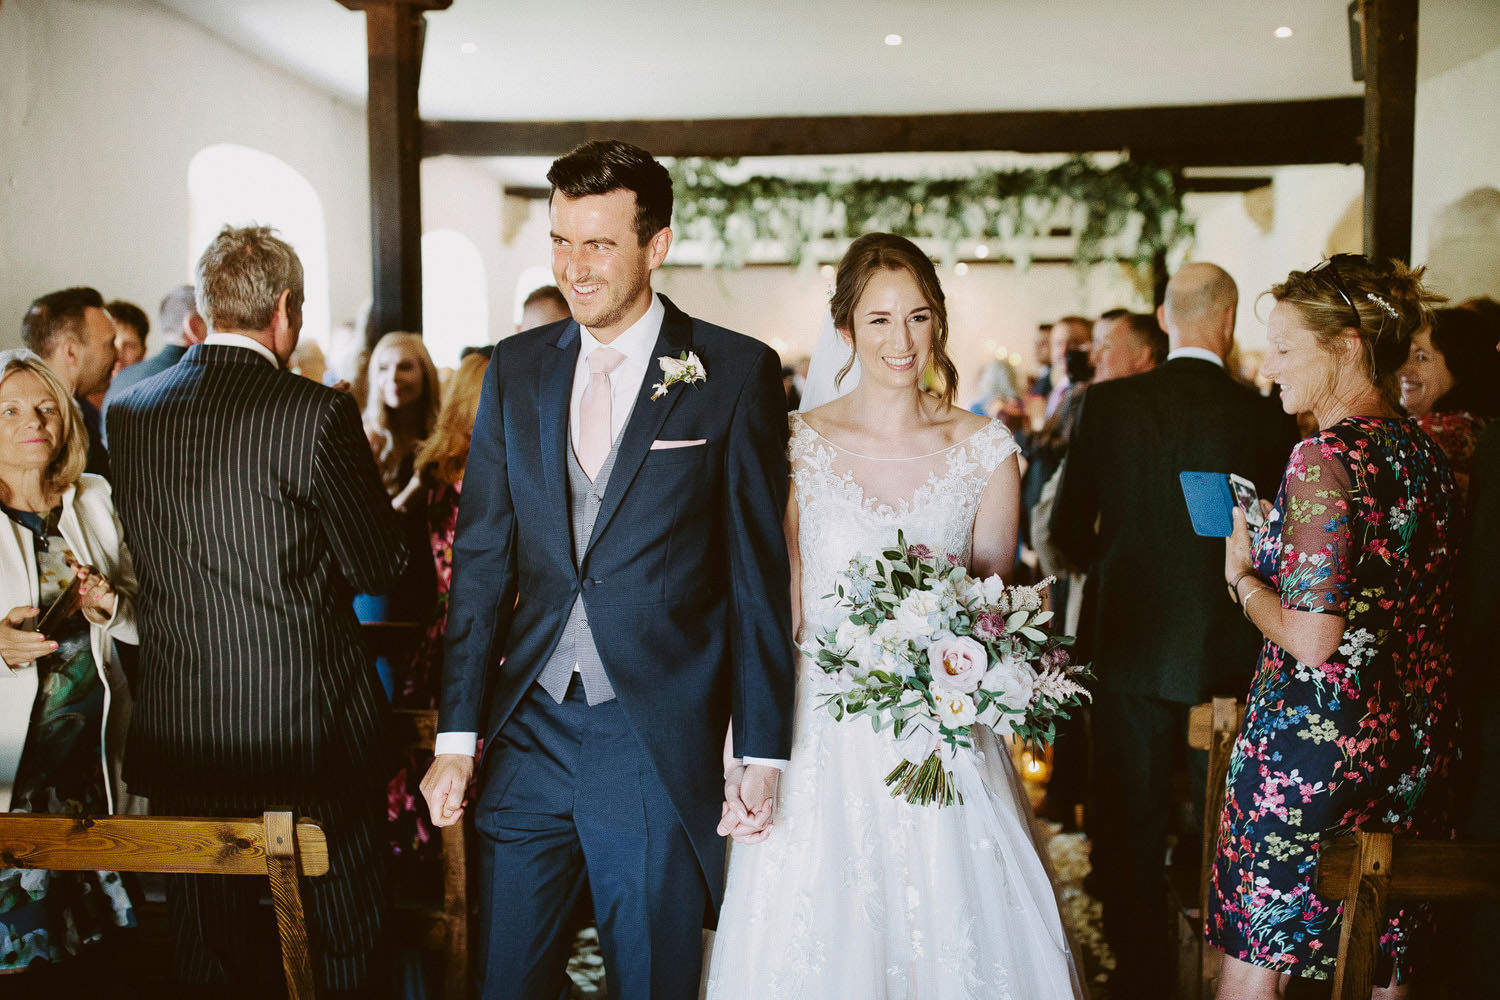 Wedding couple leave ceremony at Brympton House